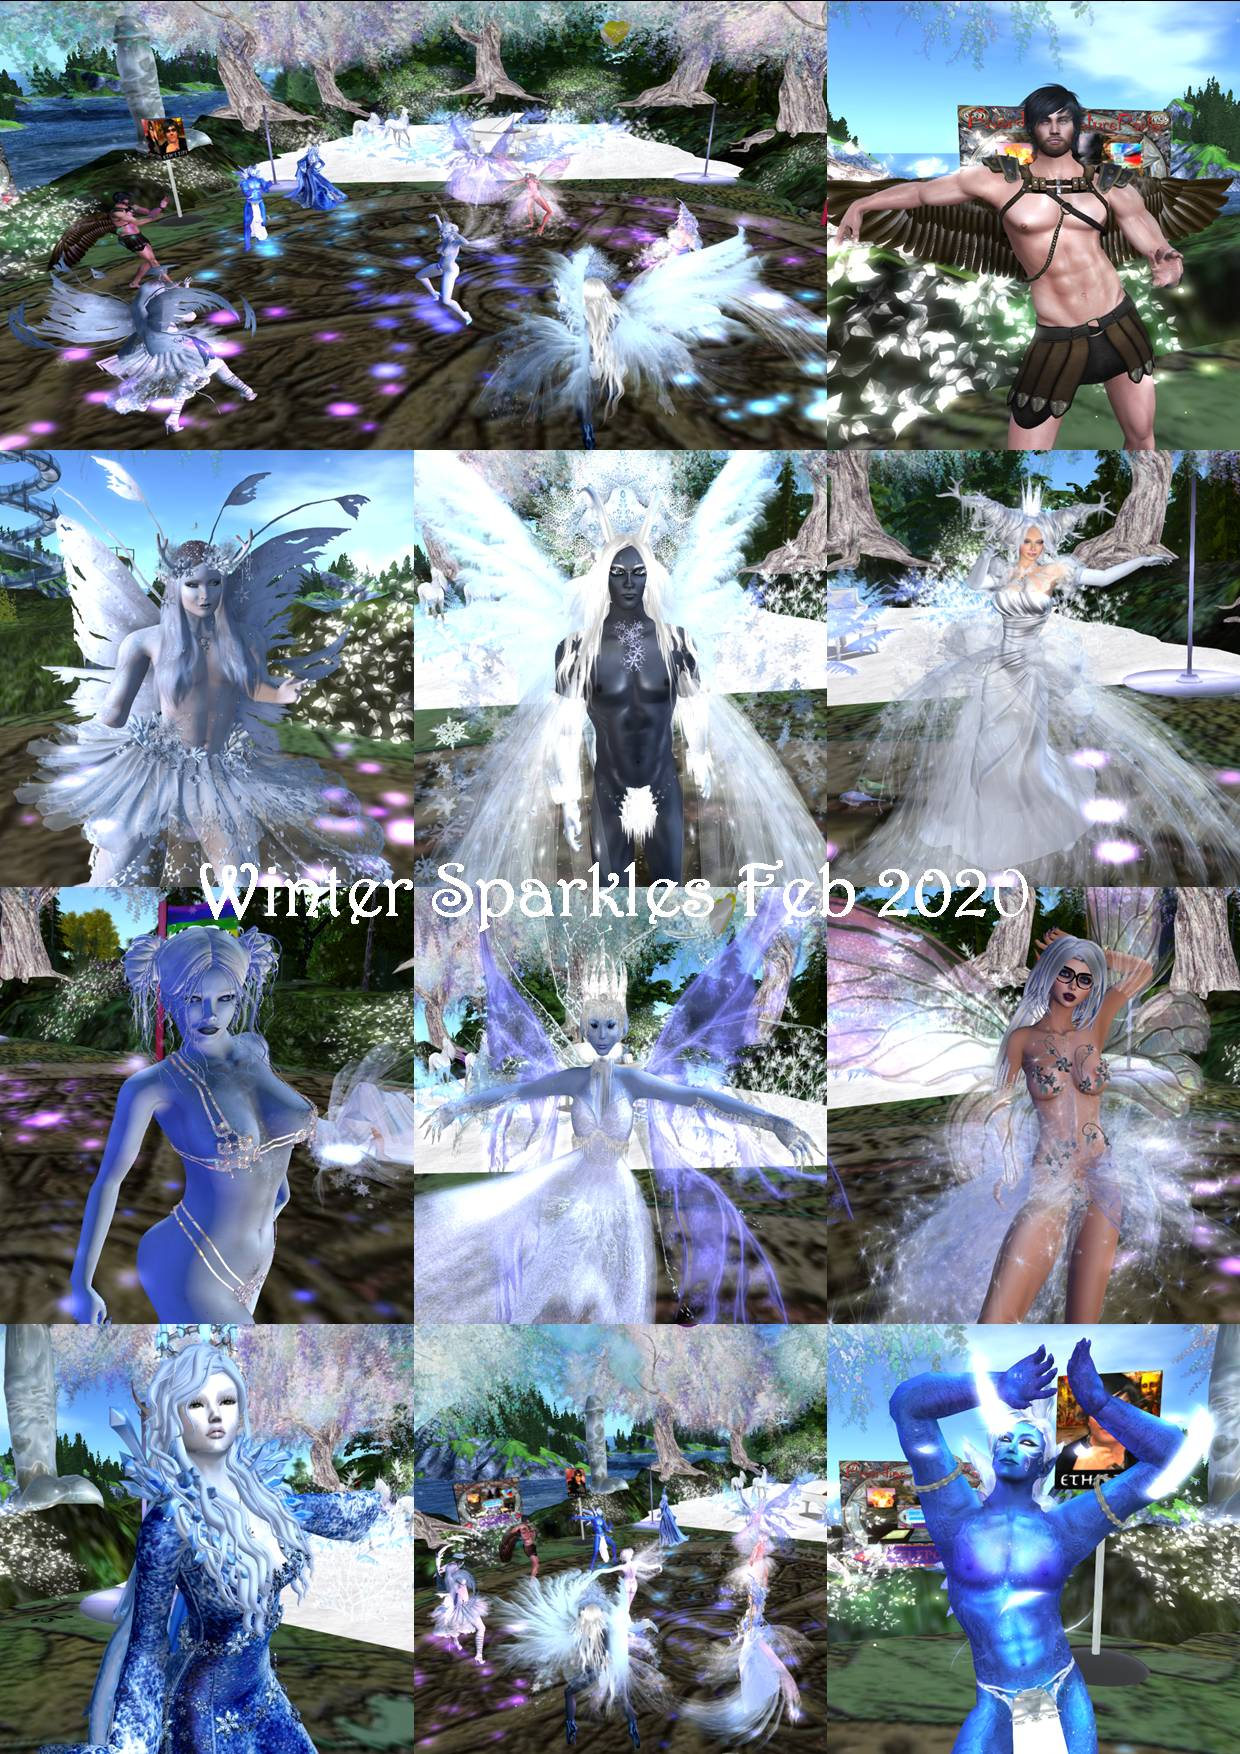 WINTER SPARKLES PARTY COLLAGE FEB 2020